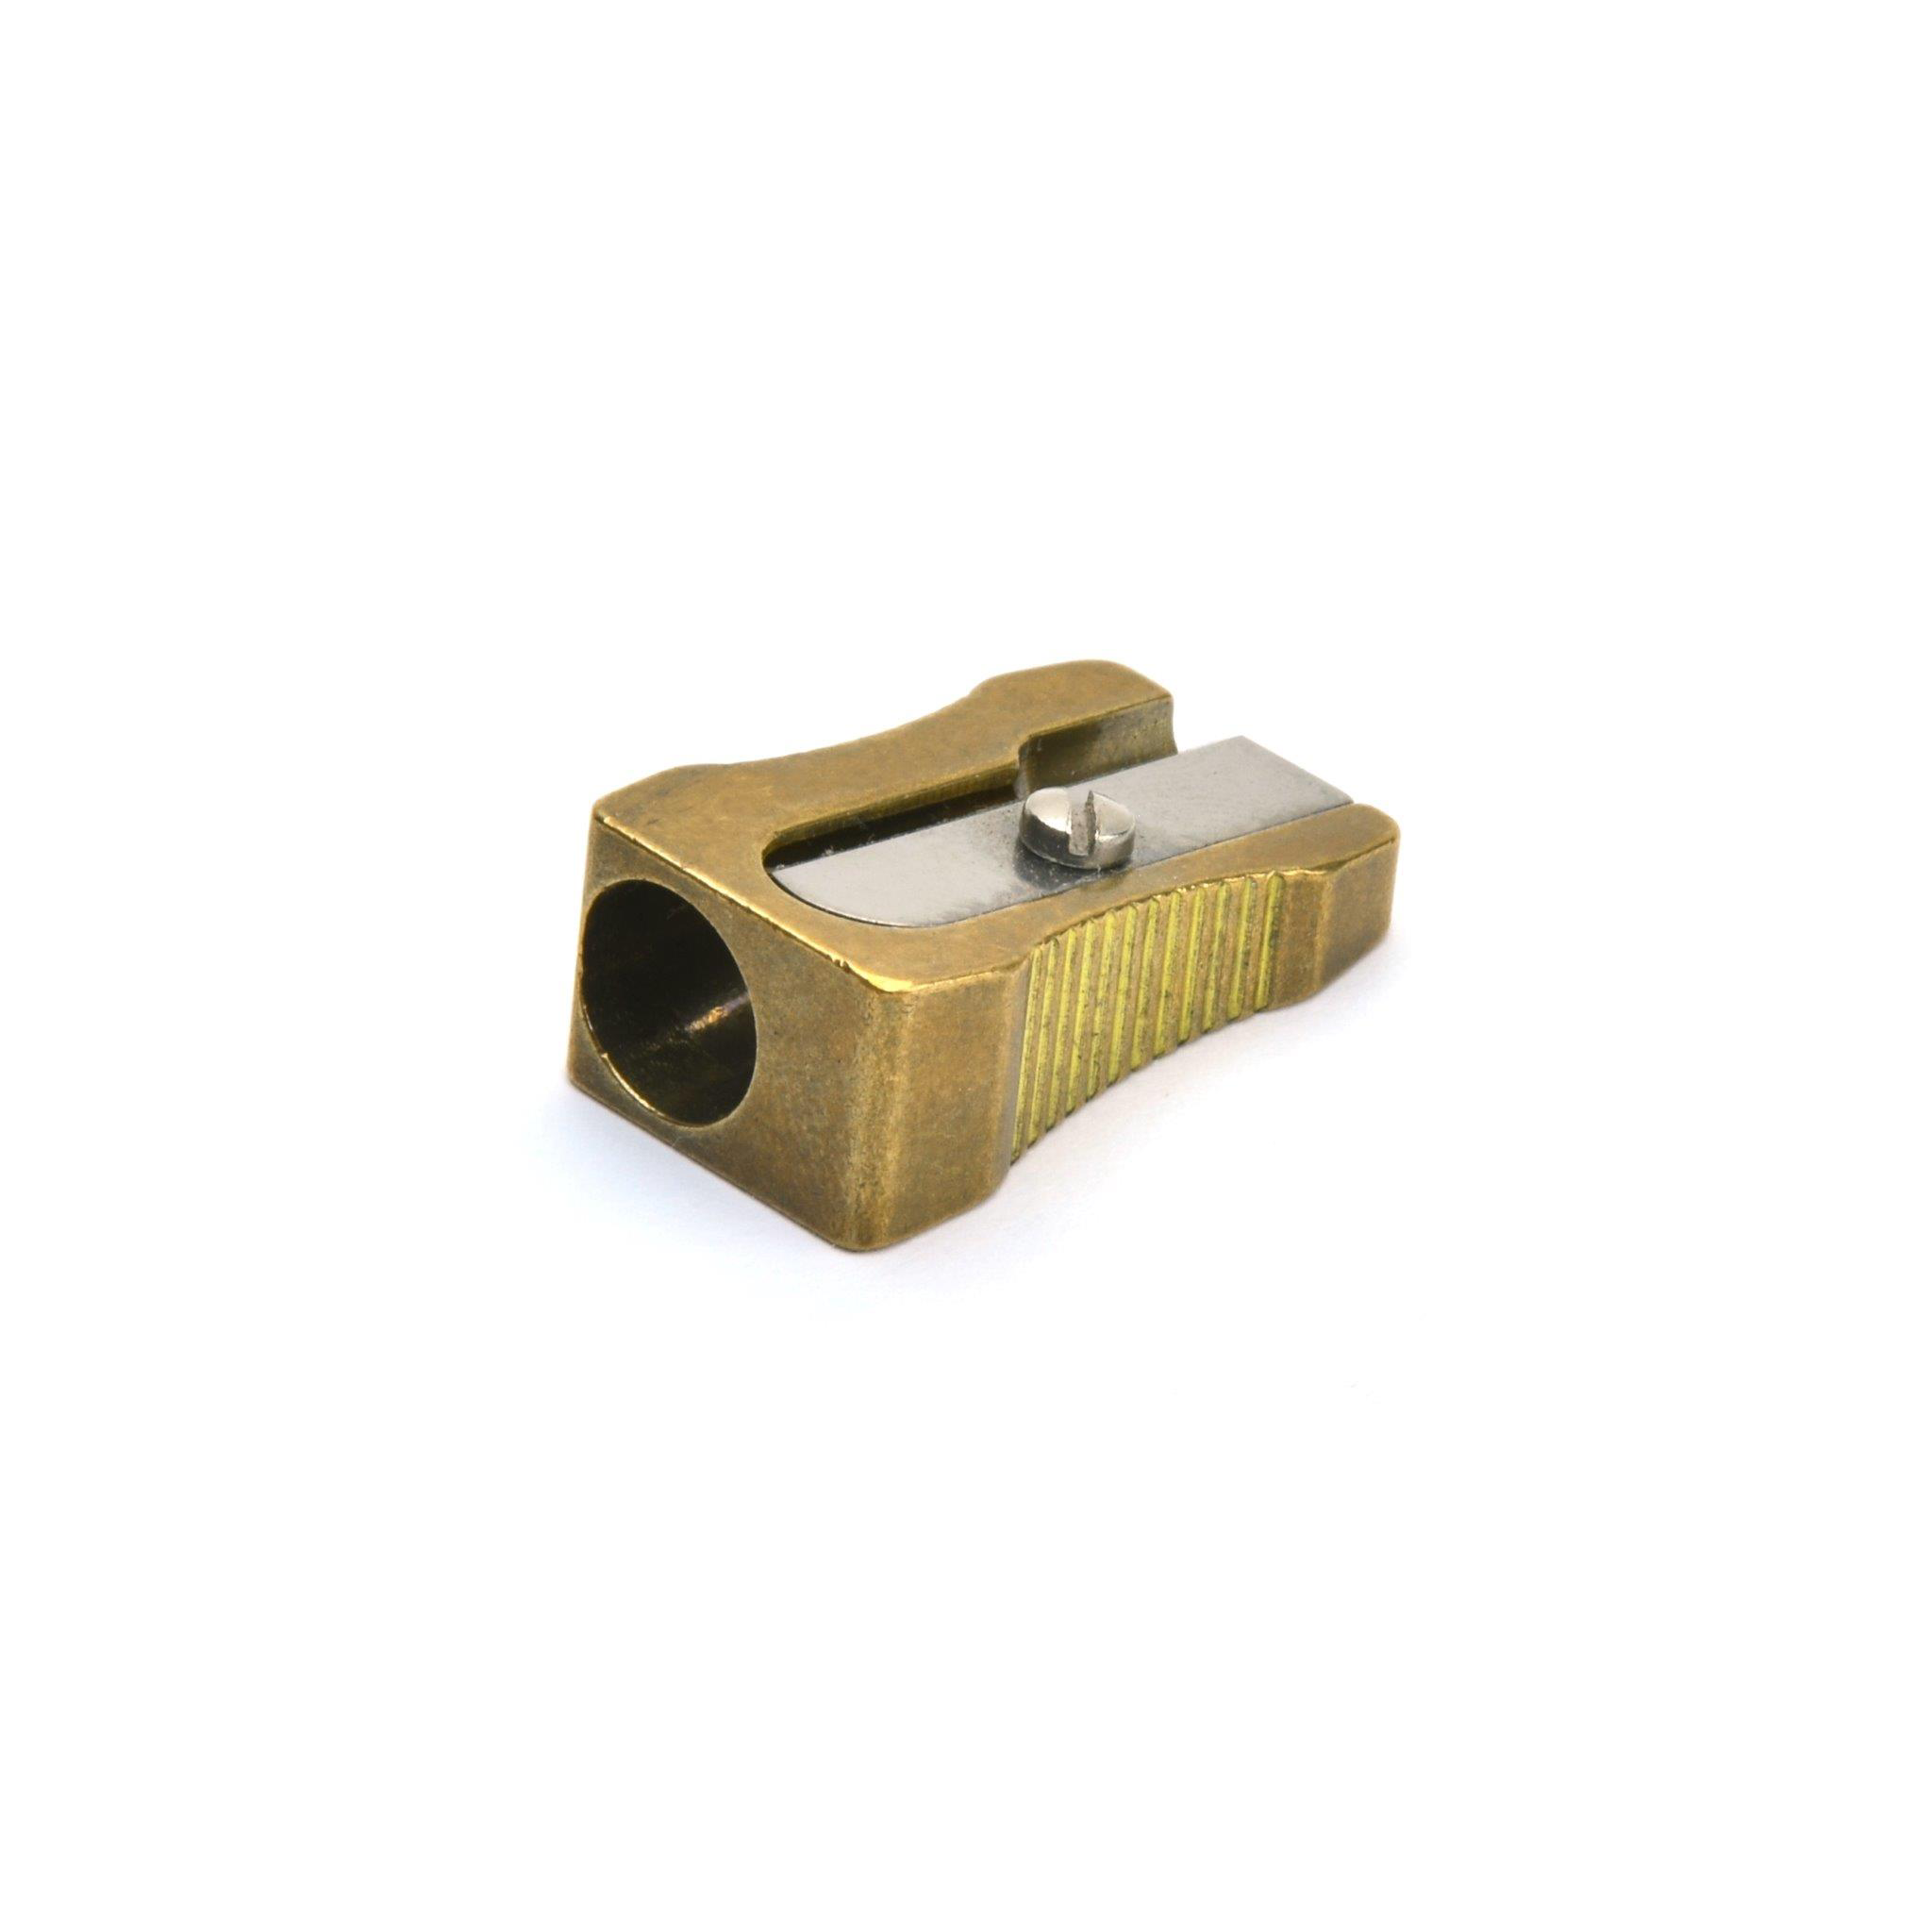 Single Hole Wedge Sharpener - Brass